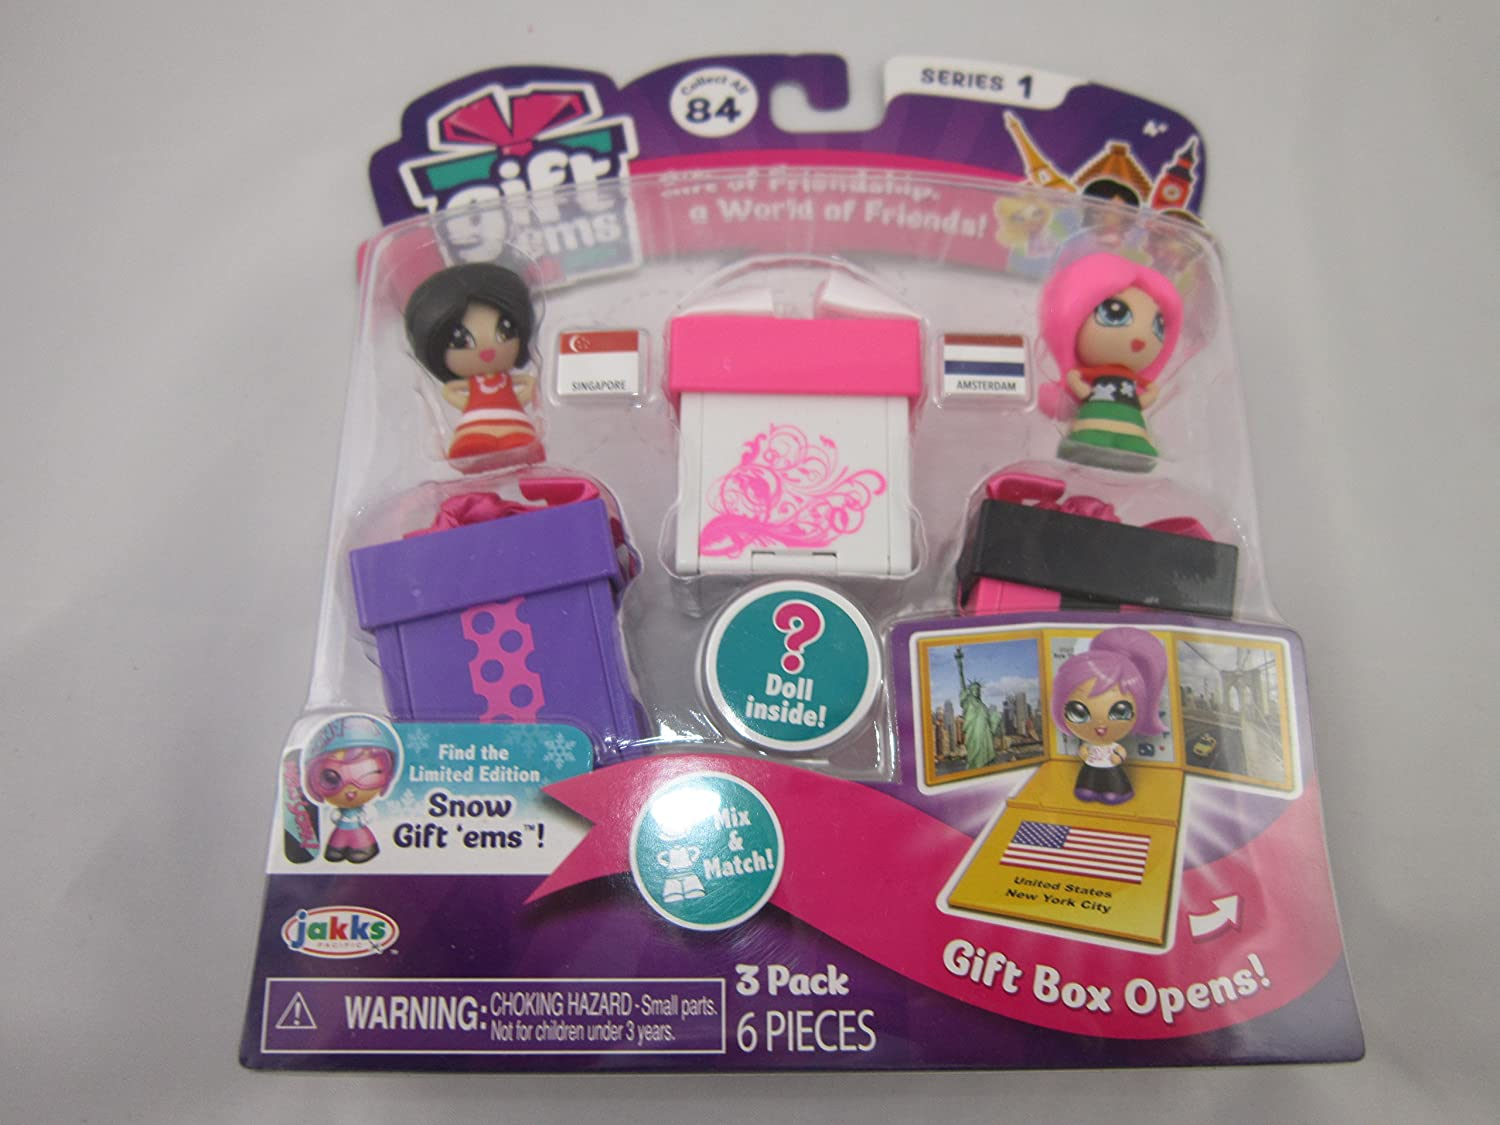 Gift Ems Series 1 Singapore Amsterdam Mystery Doll 3 Figures